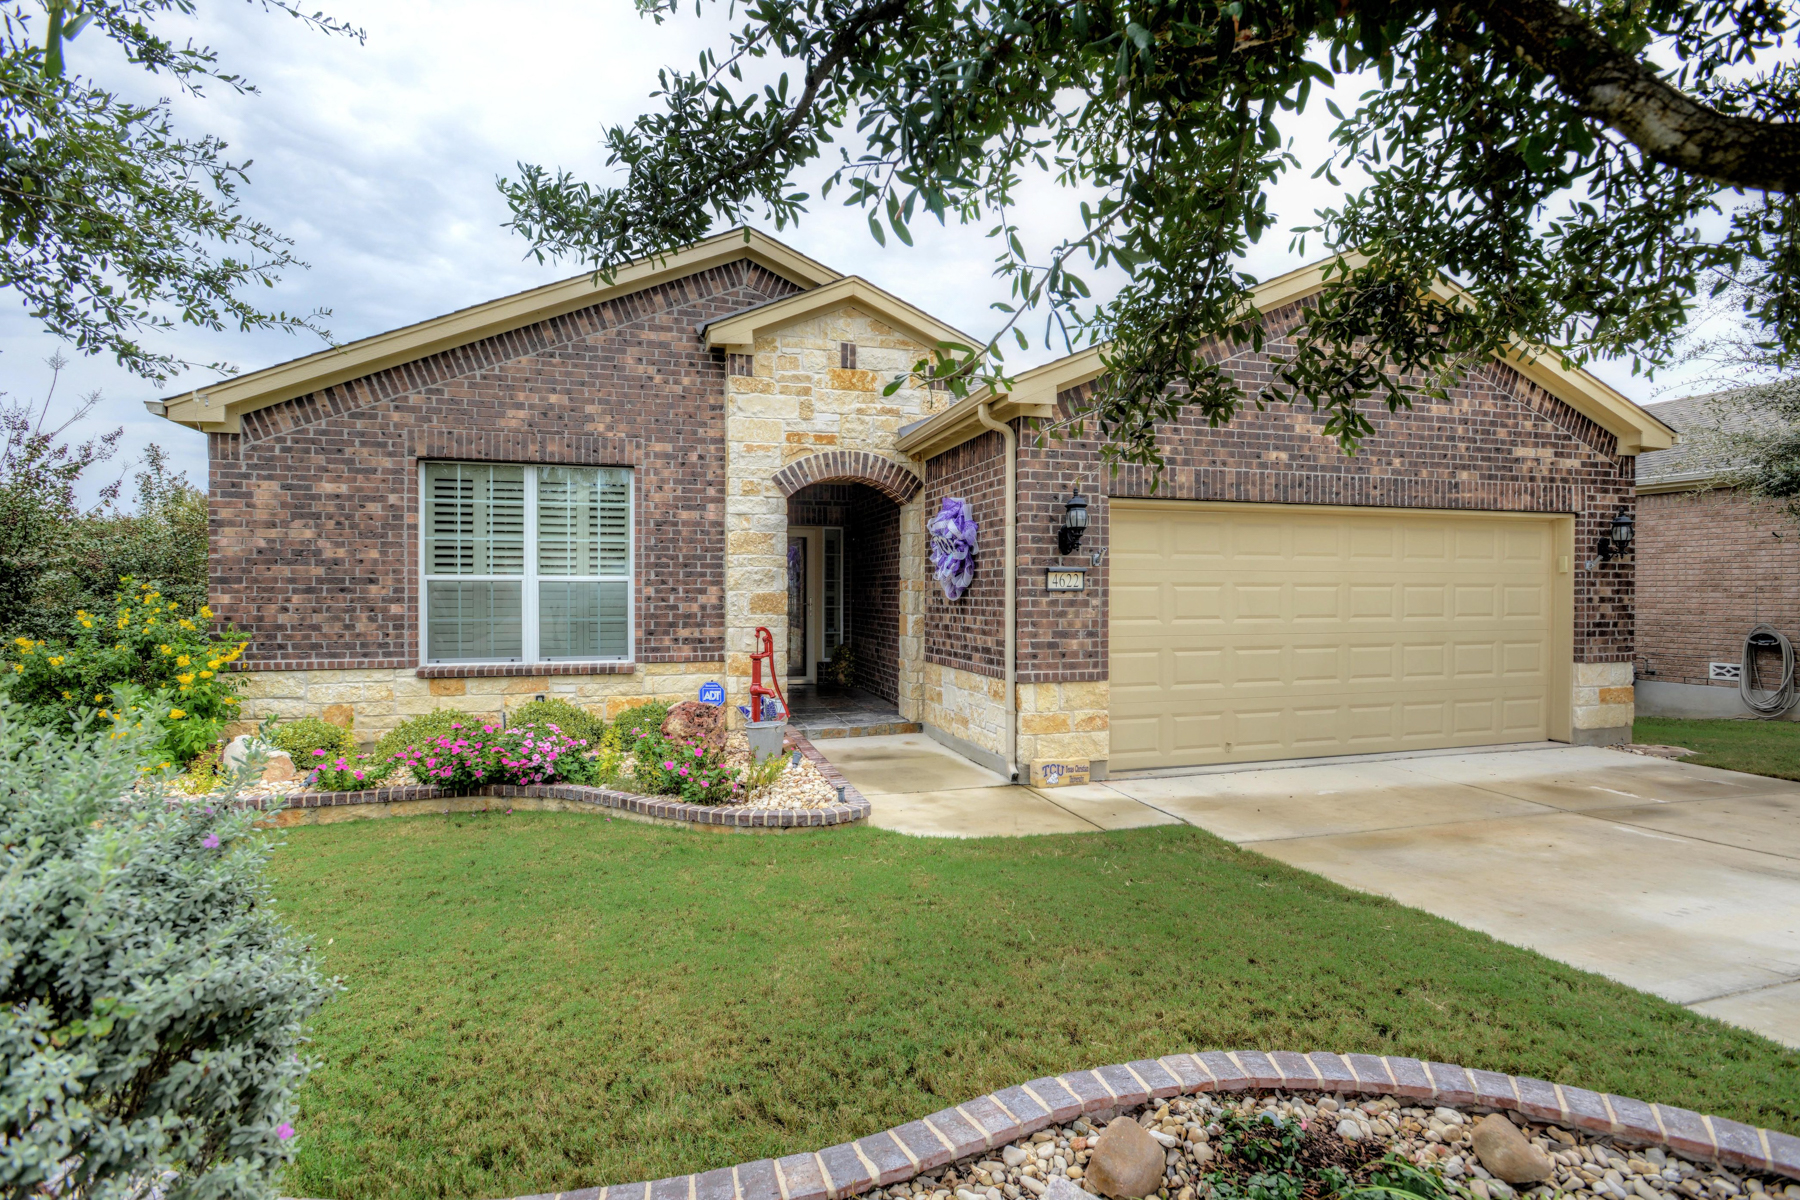 Single Family Home for Sale at Magnificent One-Story in Hill Country Retreat 4622 Fort Boggy San Antonio, Texas 78253 United States